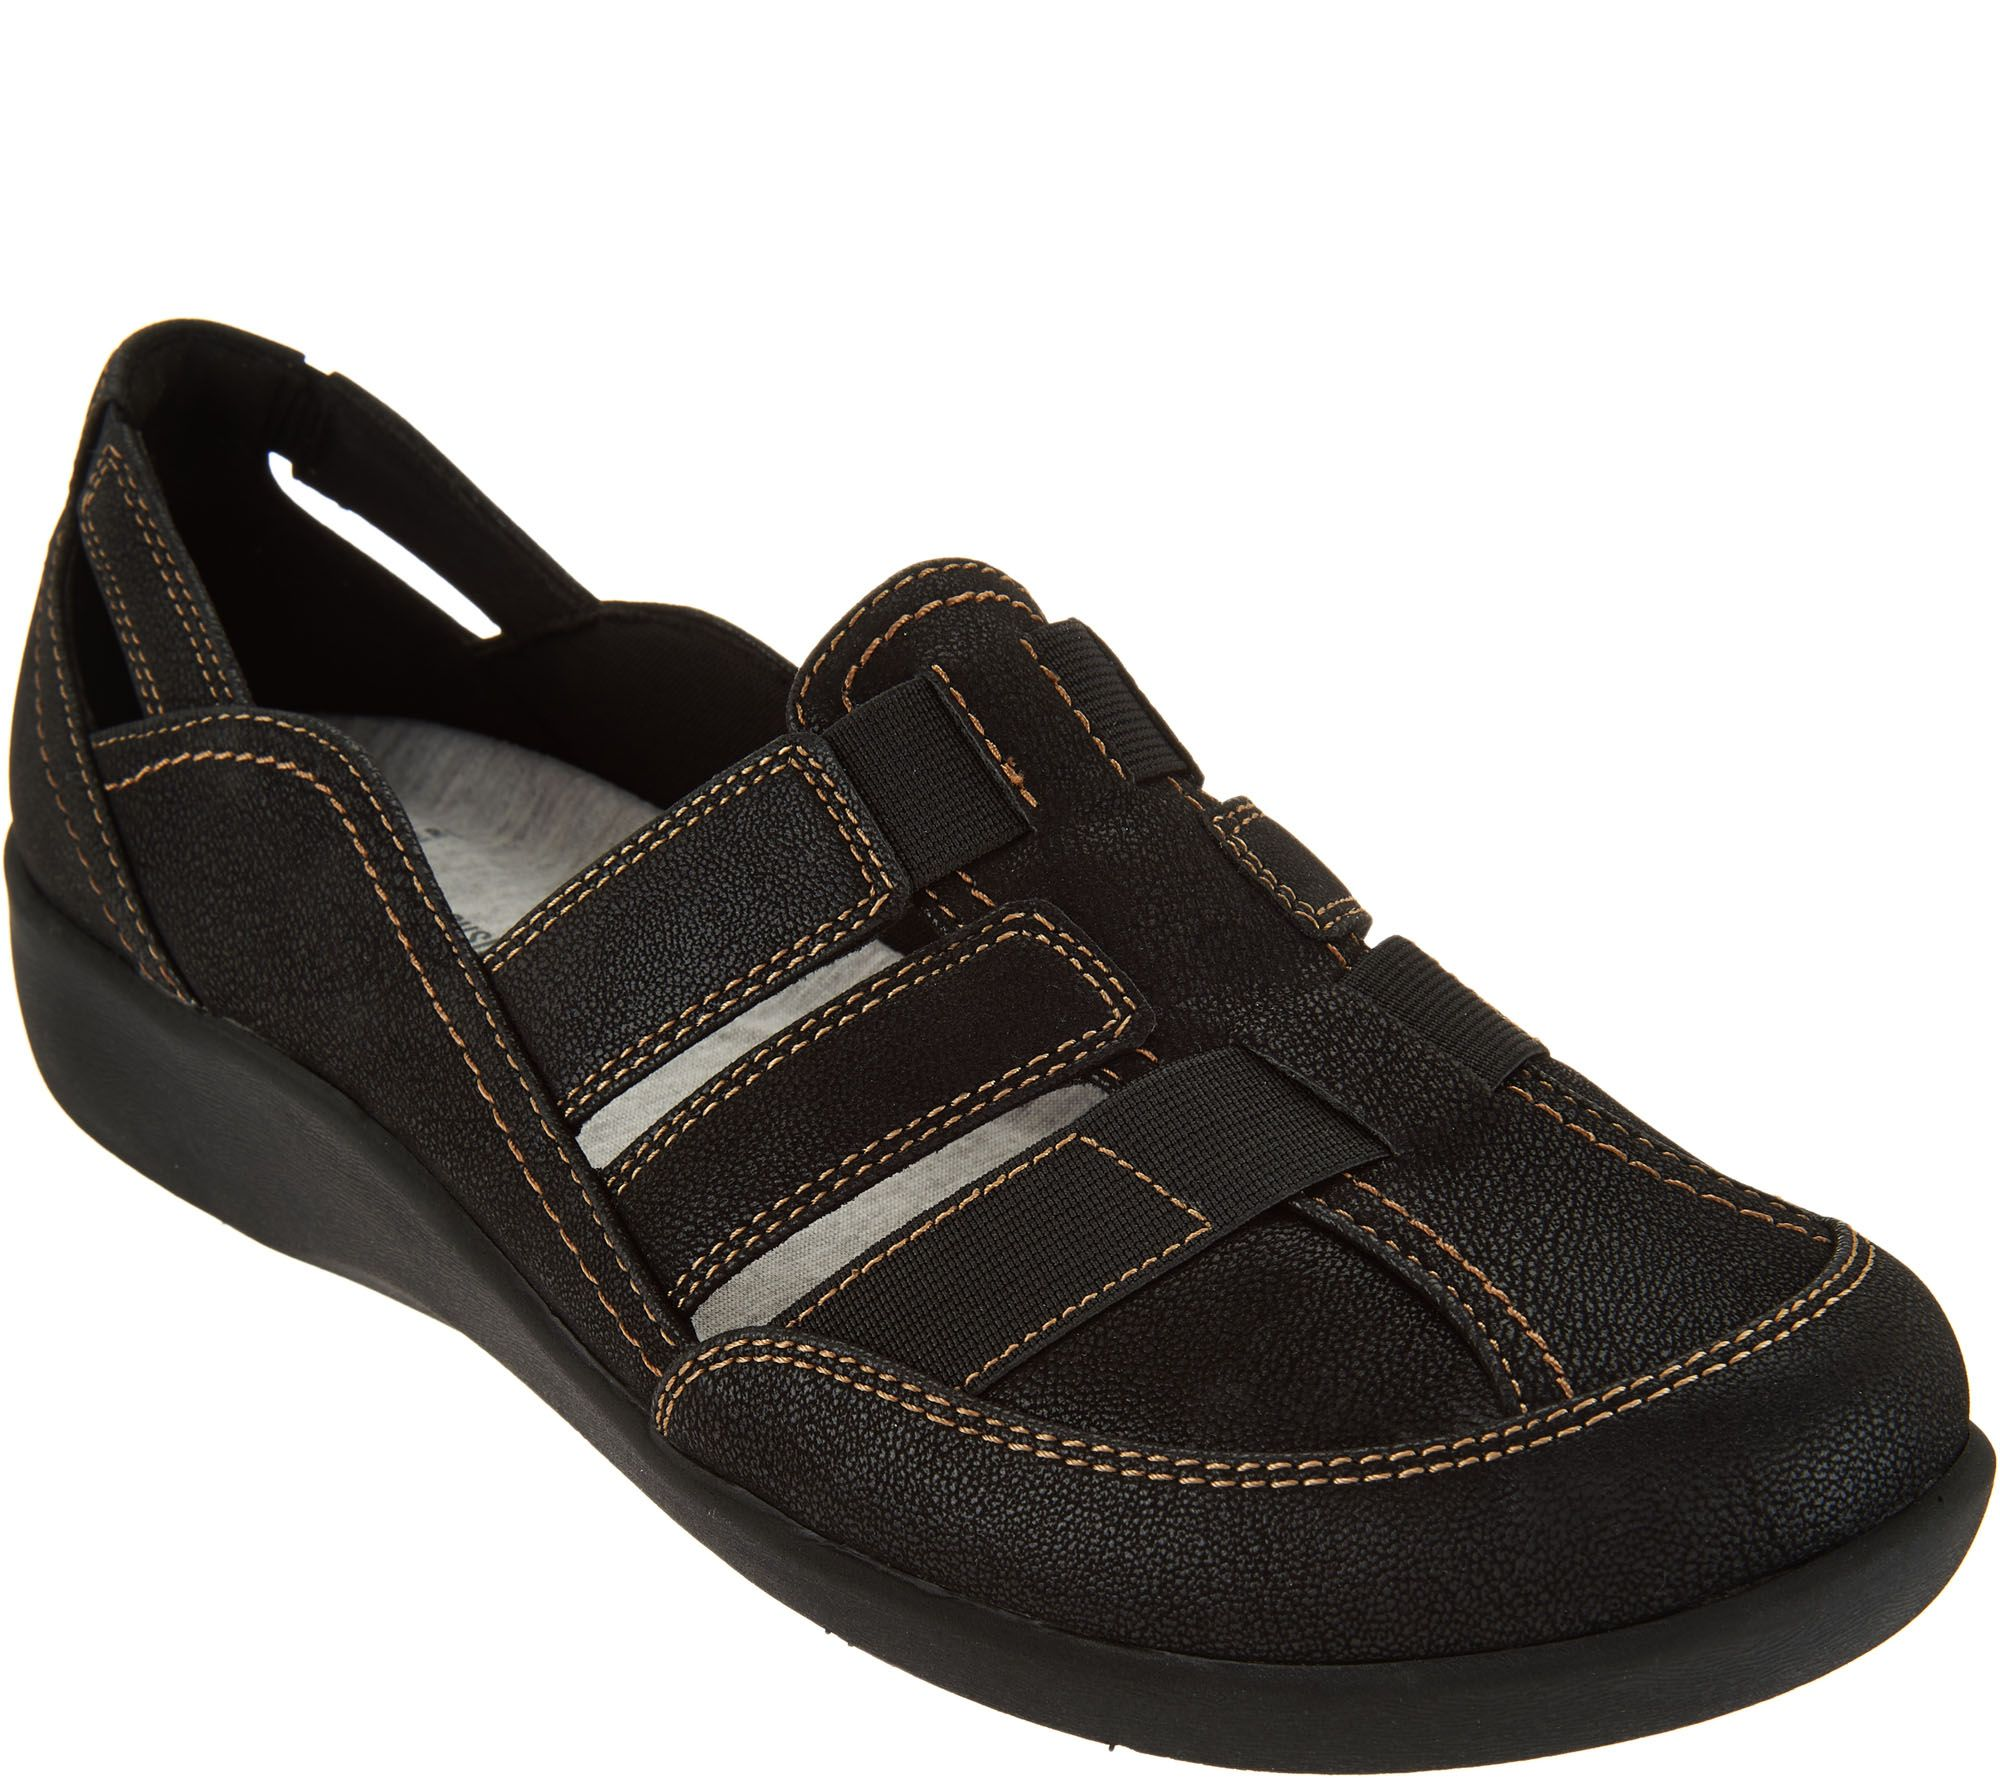 977fbab6f2df CLOUDSTEPPERS by Clarks Slip-on Shoes - Sillian Stork - Page 1 — QVC.com